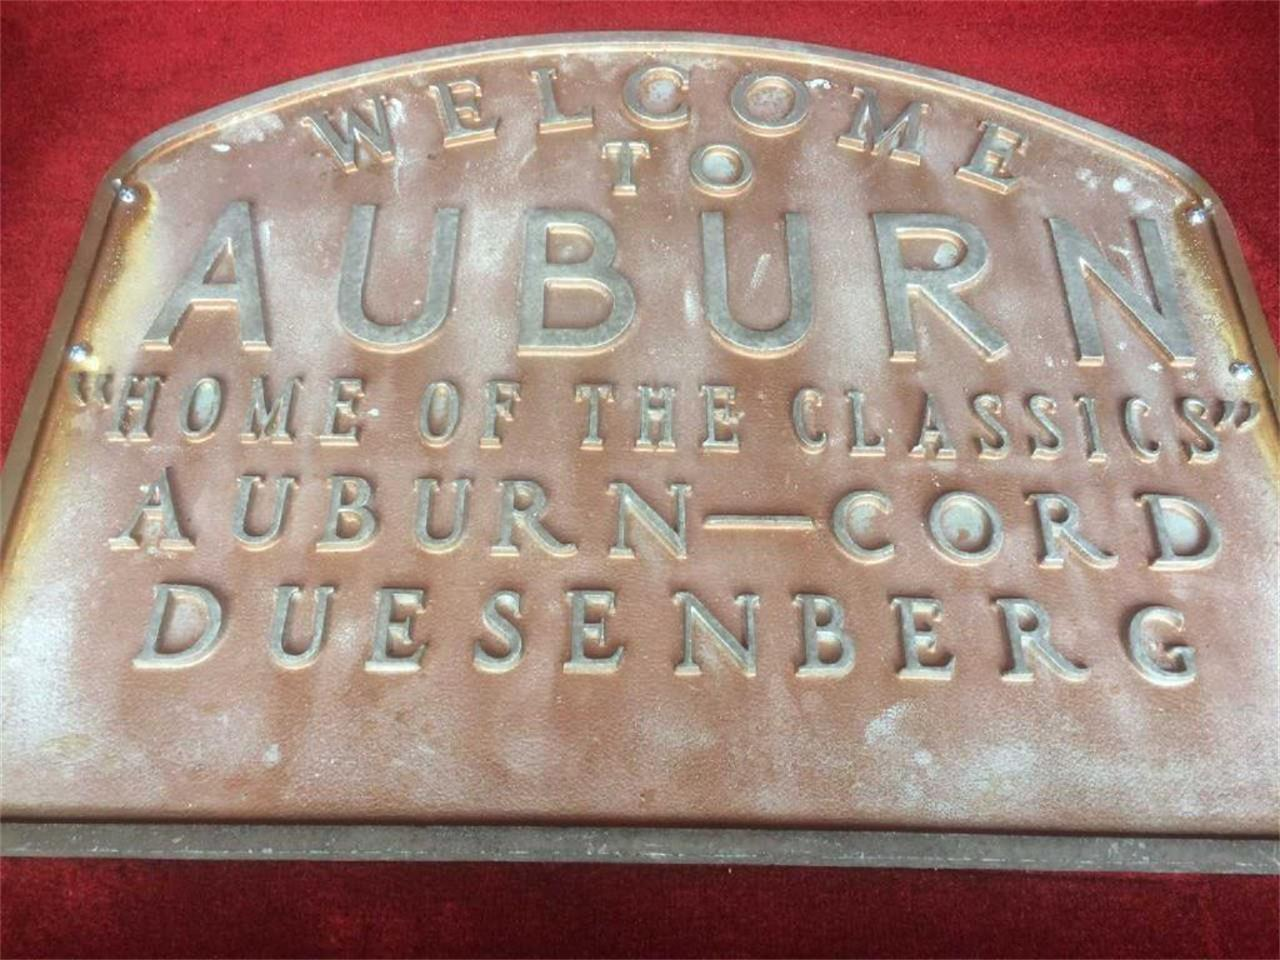 Large Picture of 1932 Auburn 8-100 located in Pennsylvania - PM0G